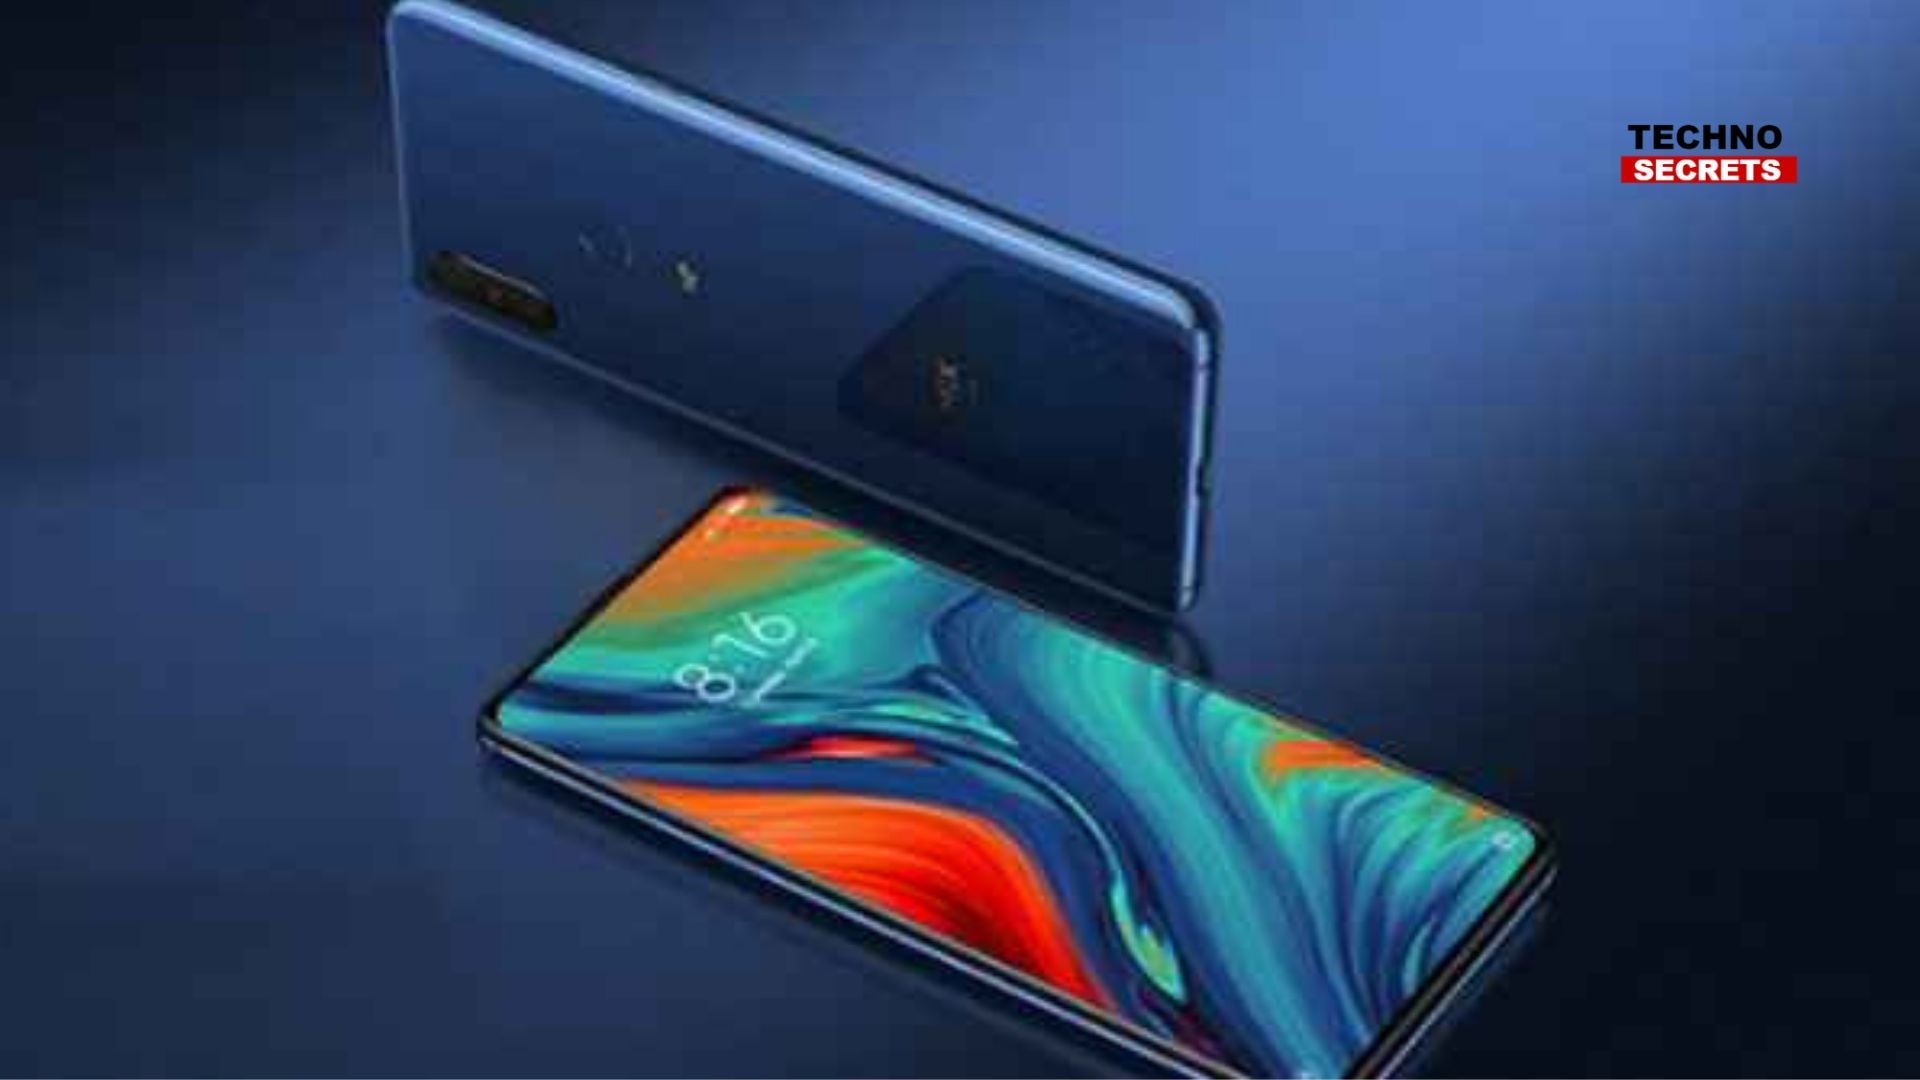 Mi Mix 4 Specifications Leaked, Tipped to Sport a 100MP Camera